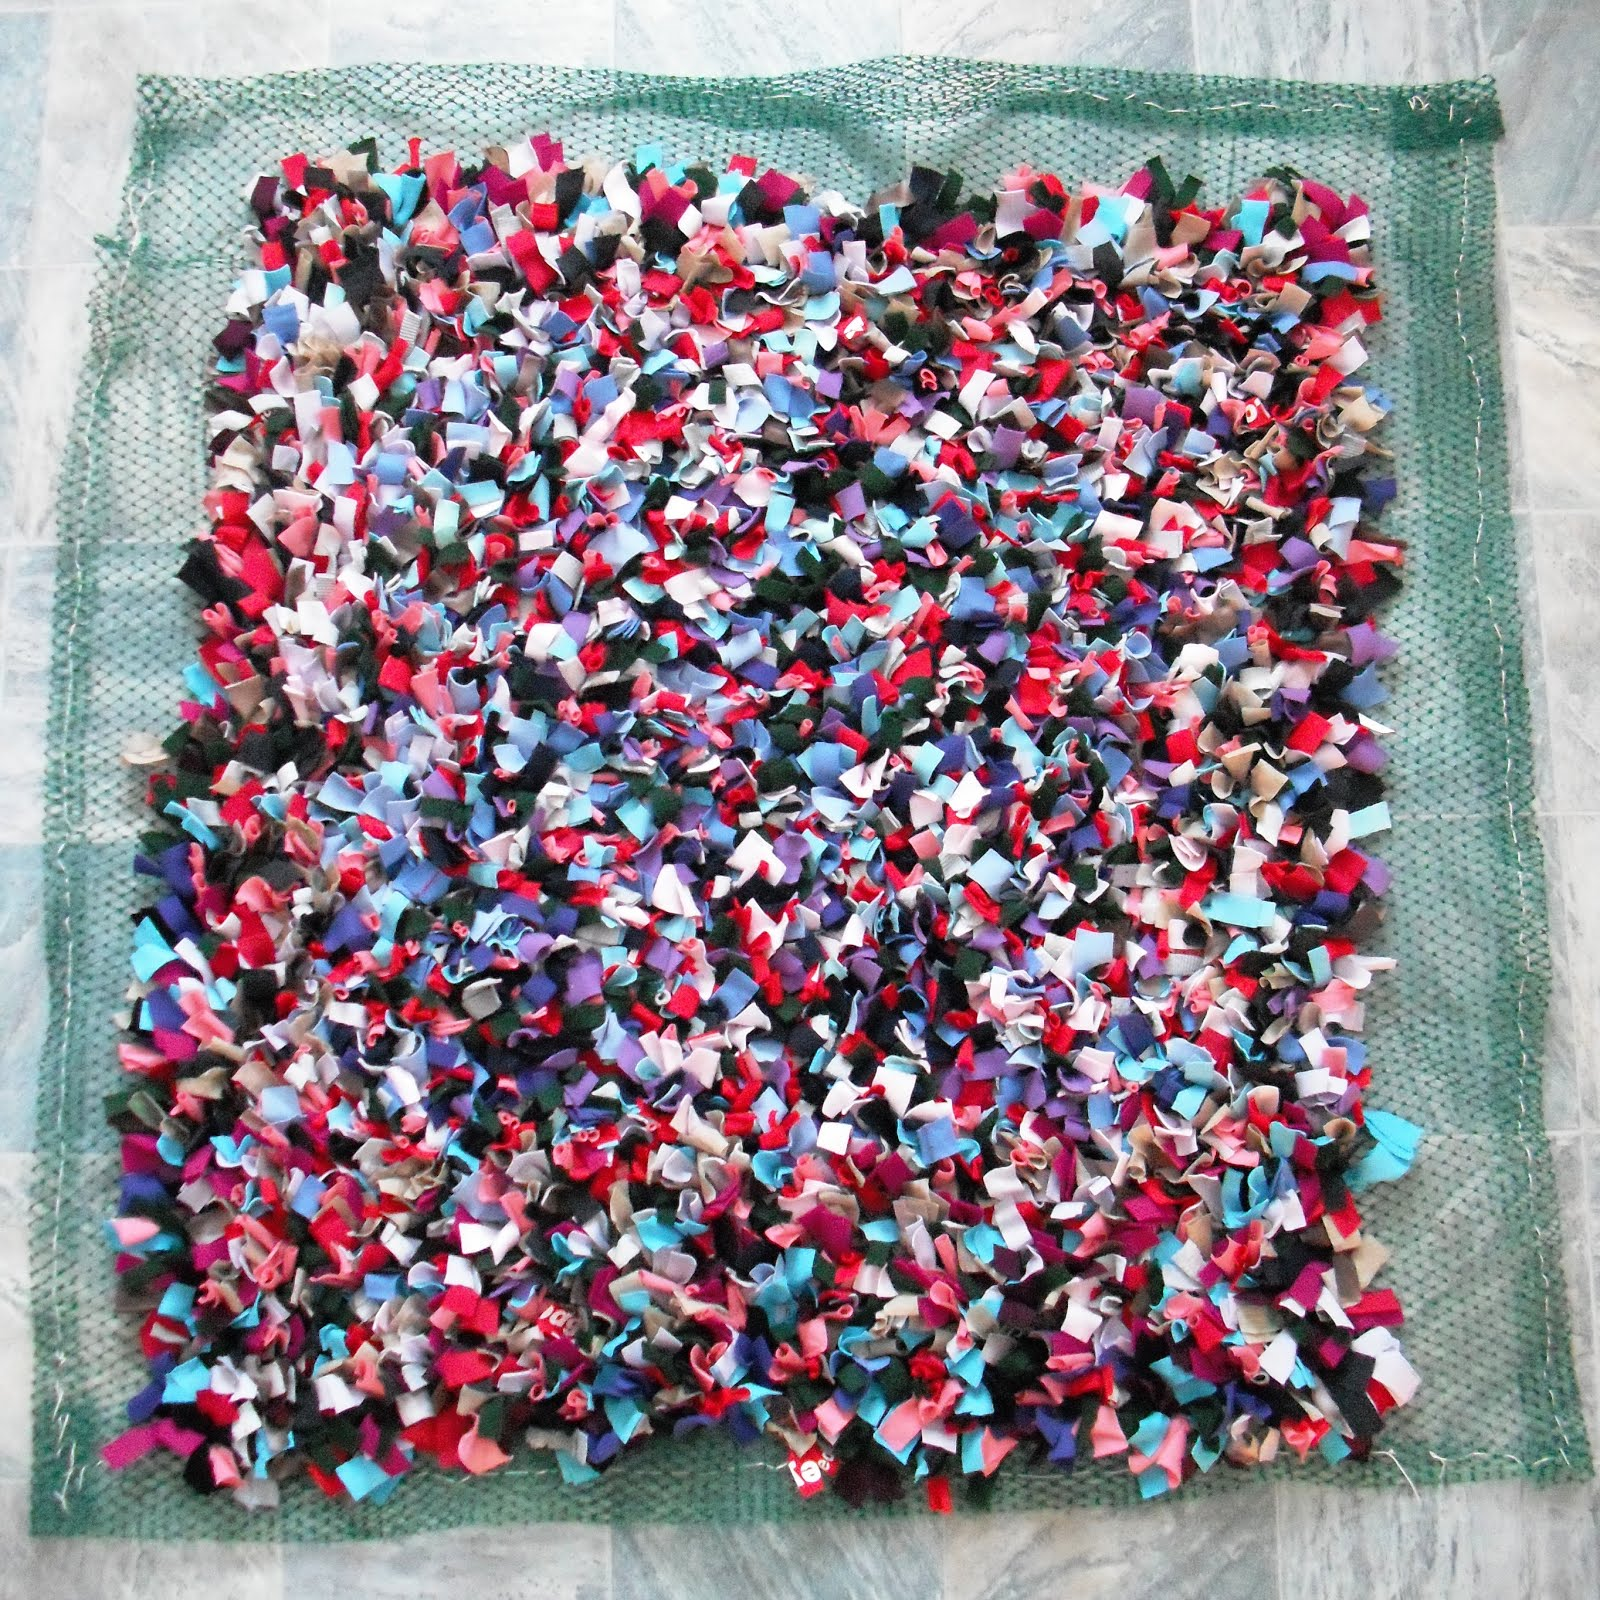 I Have Found Some Information About Making Rag Peg Rugs Mats It S Very Interesting Was Taken From A Crafting Web Site But The Link On This Article